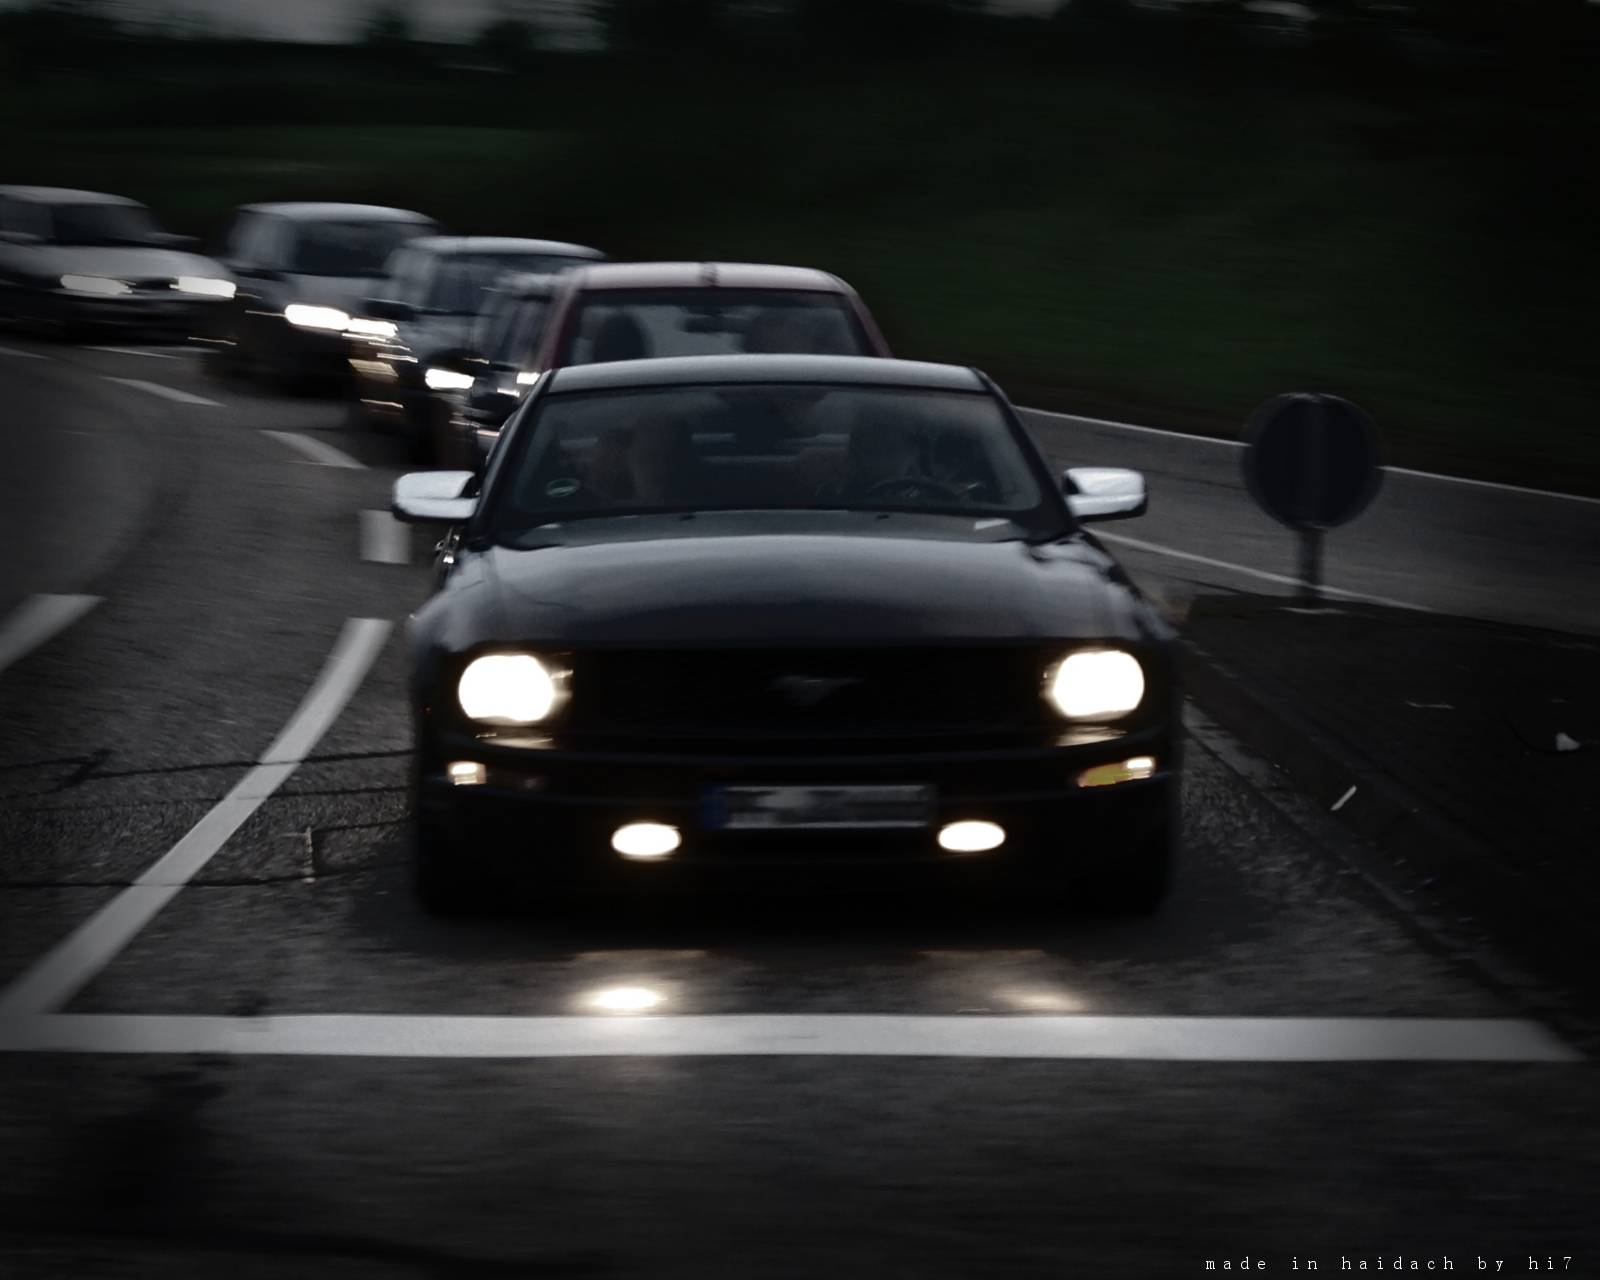 Blurred Ford Mustang